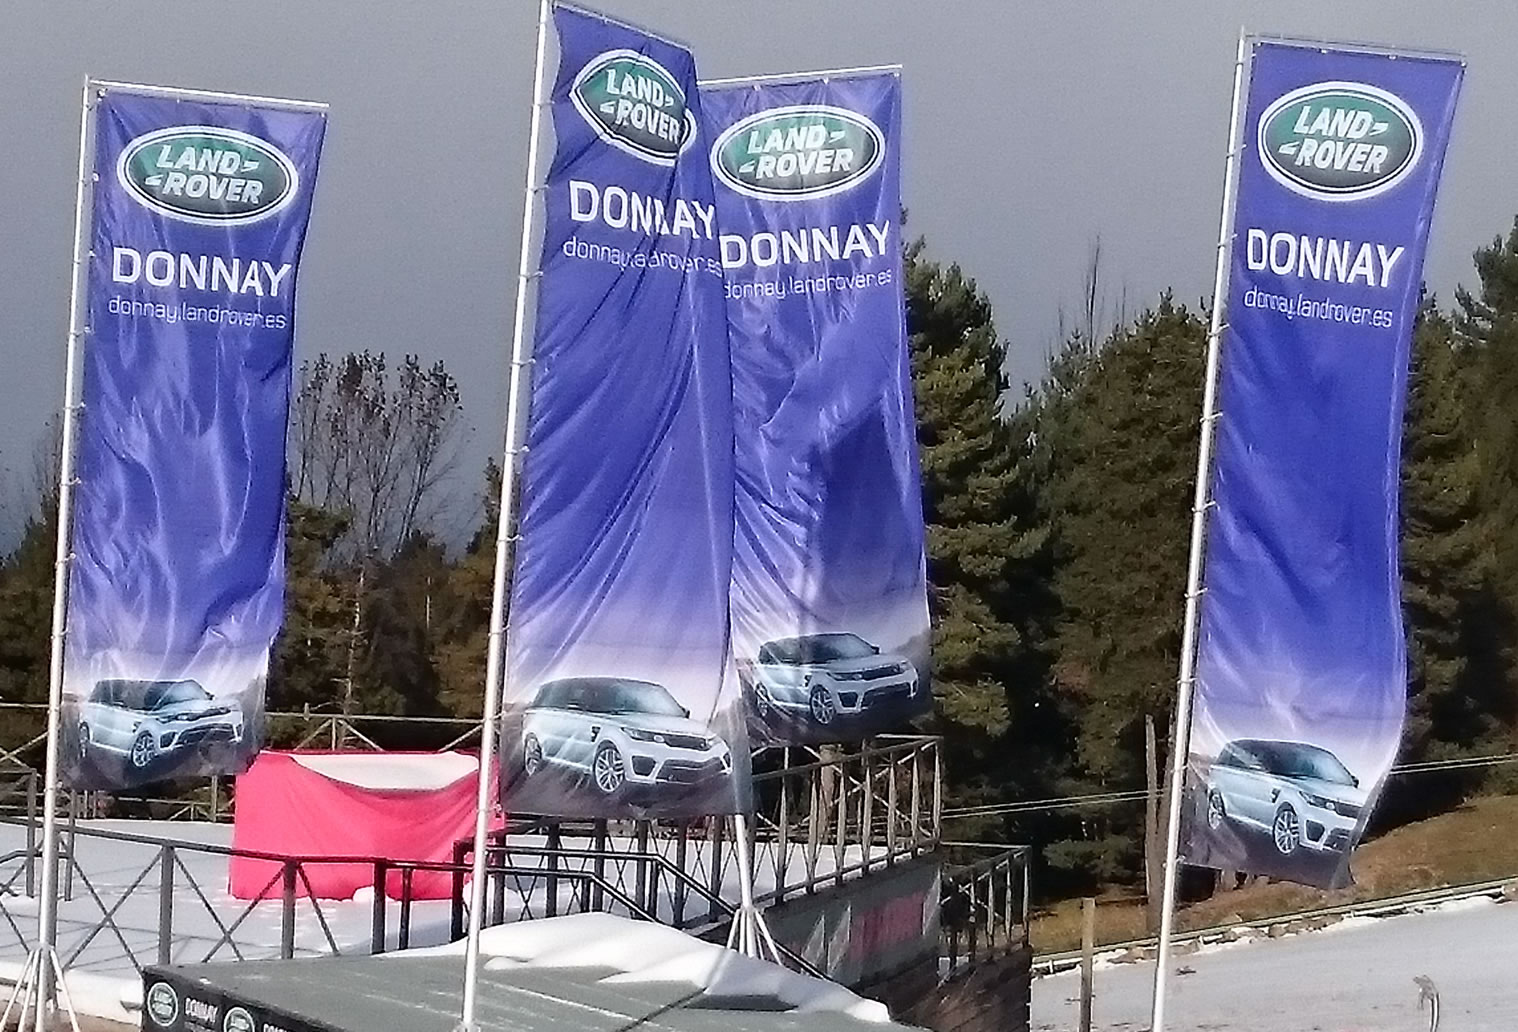 Land Rover DONNAY